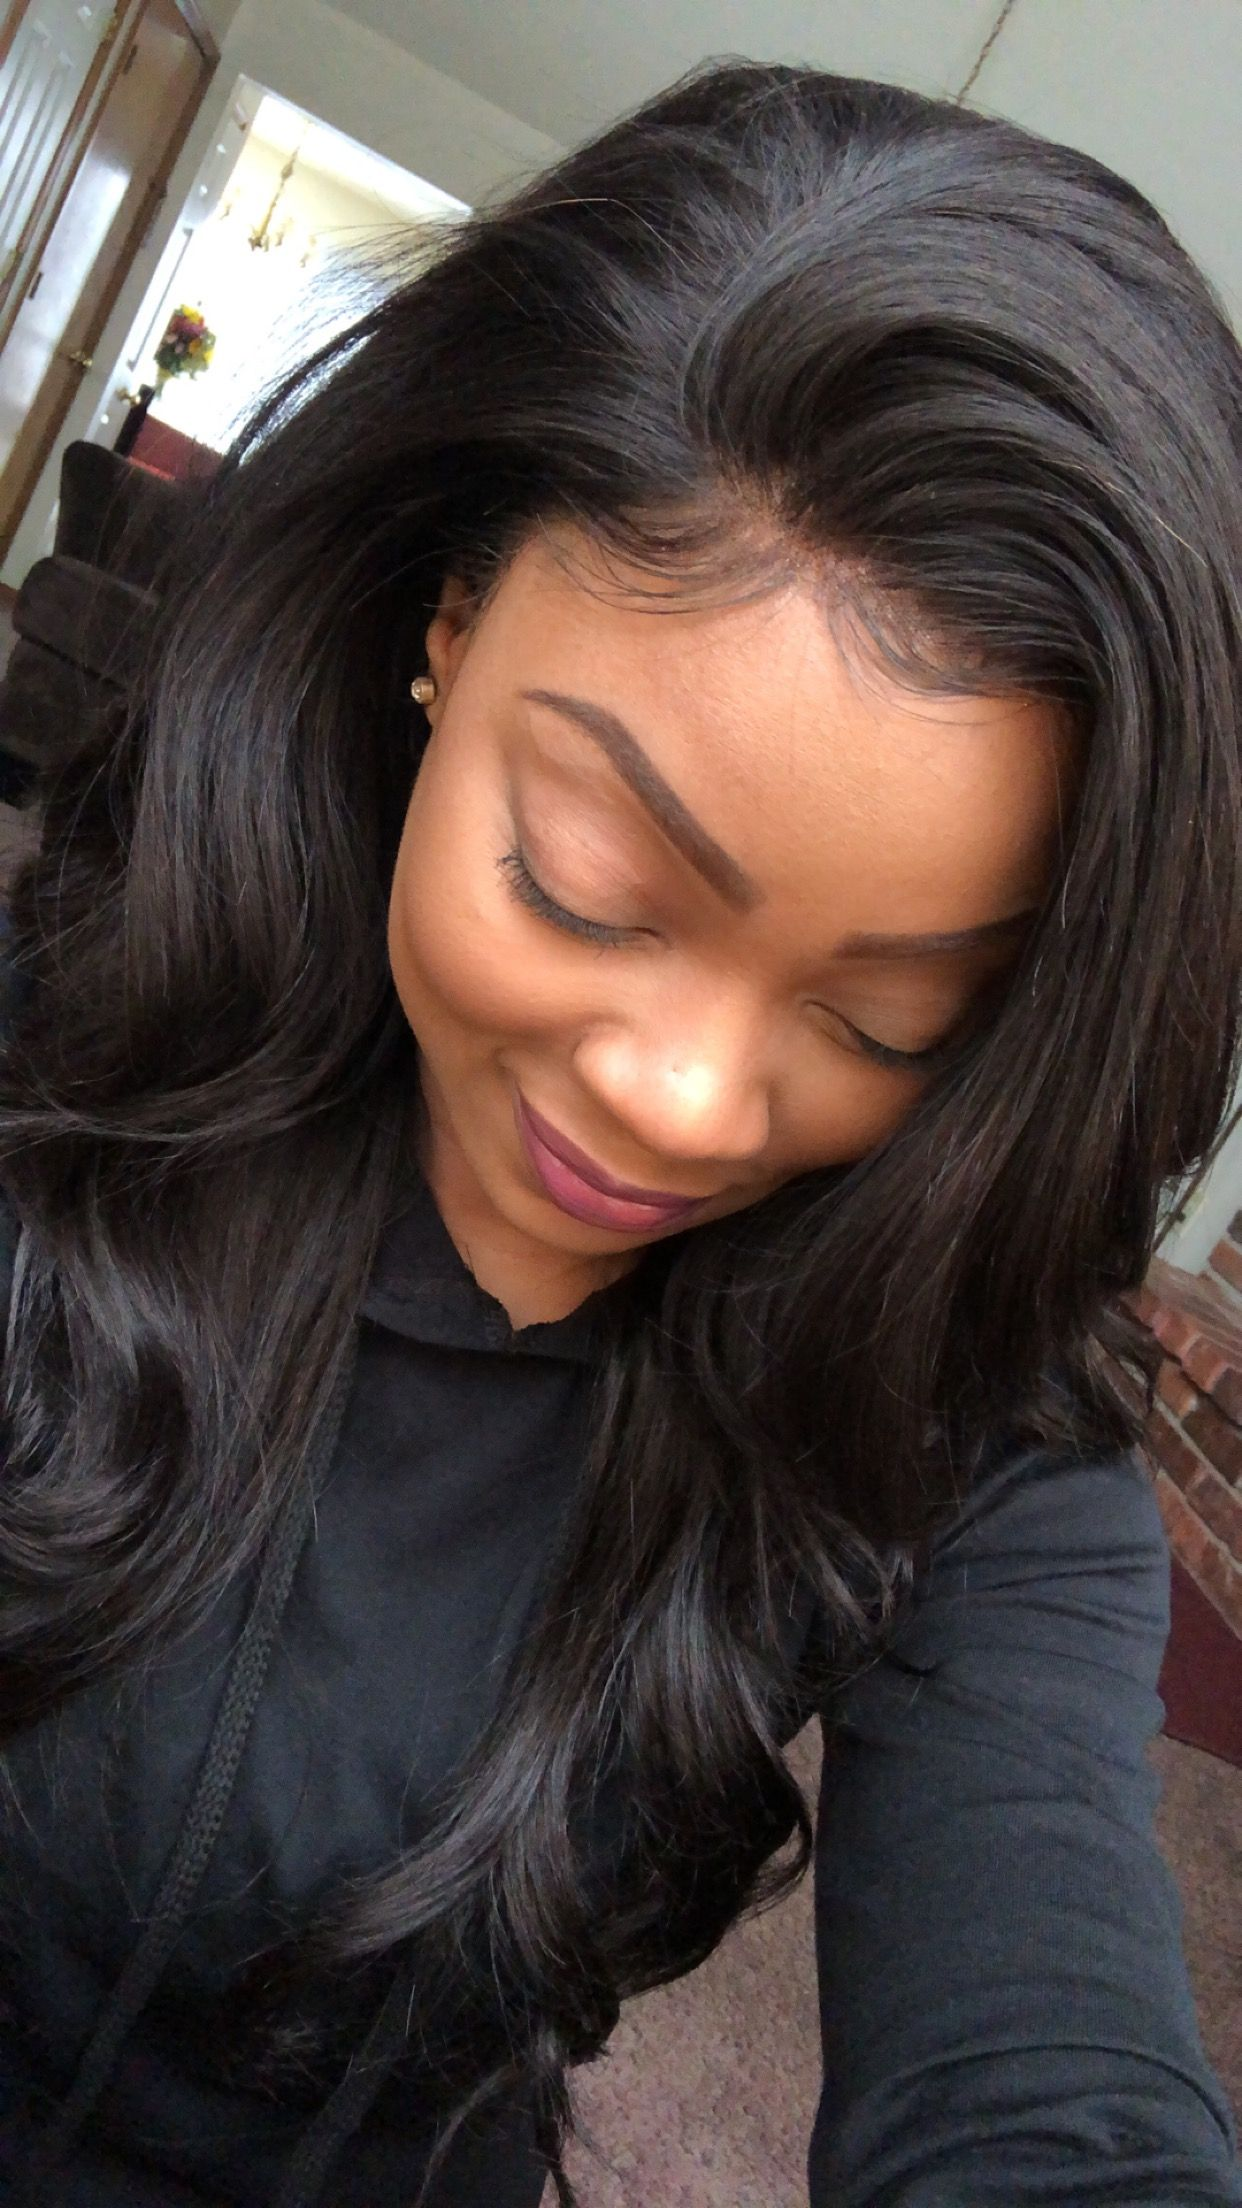 Frontal Sew In 14 16 18 12 Inch Frontal Hair Designs Long Hair Styles Hair Styles